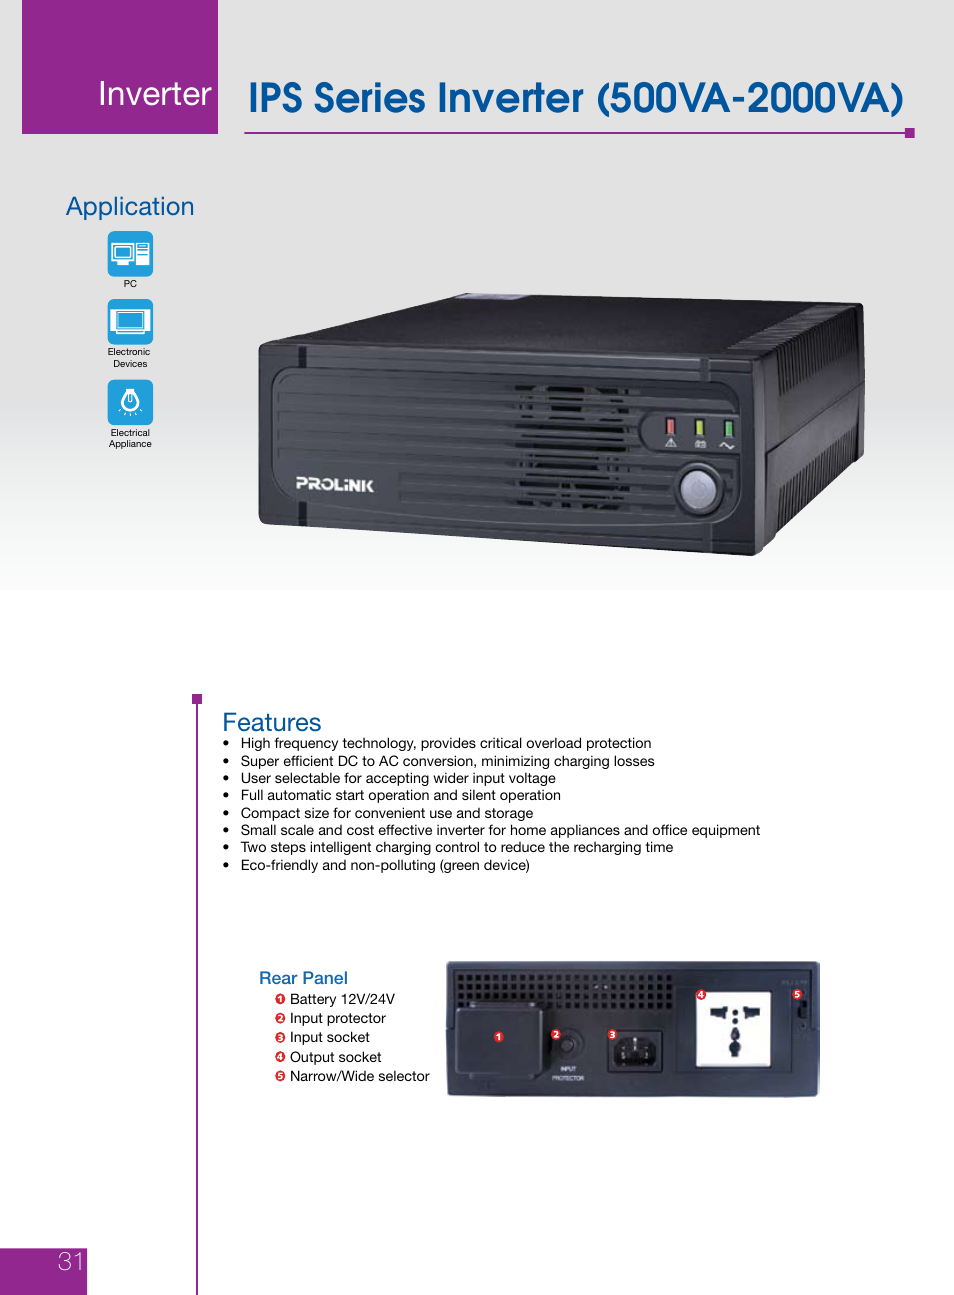 Prolink Ips2000 Ips2400 Inverter 2400va 1400w Please Note The Machines Below Do Not Require Qc Gage In Order To Interface With Calc